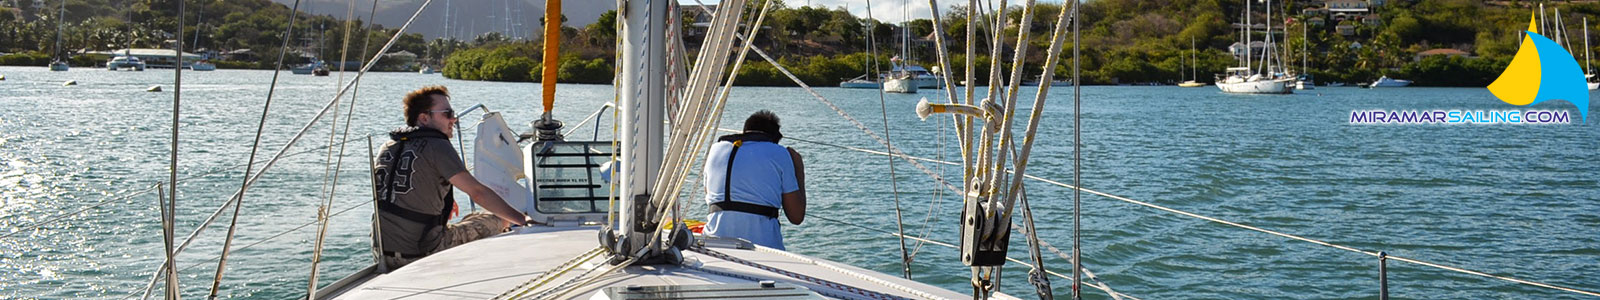 Sailingcourses